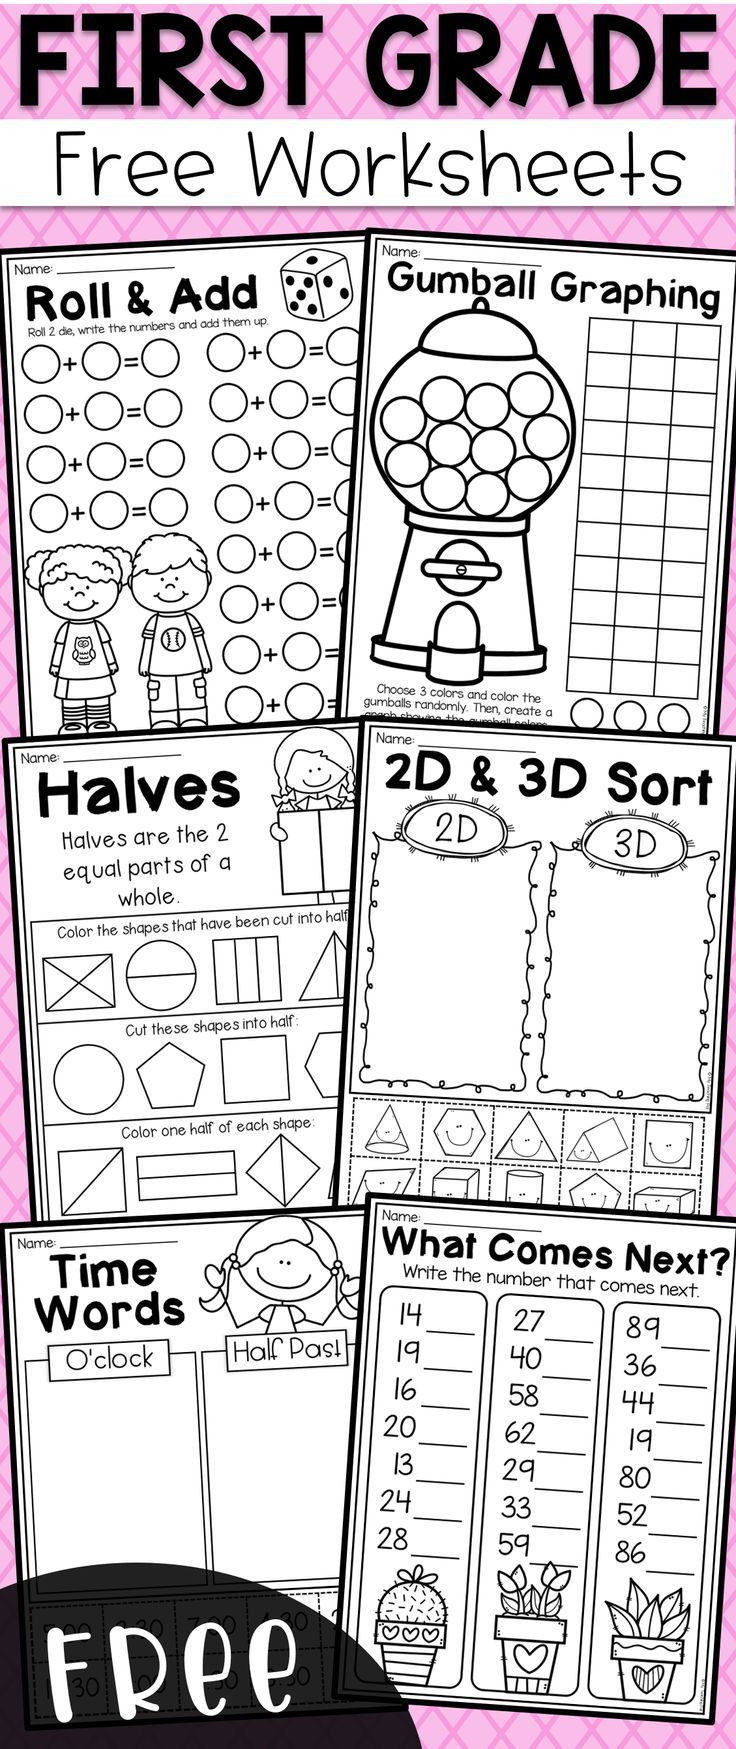 Place Value First Grade Worksheets Free First Grade Math Worksheets